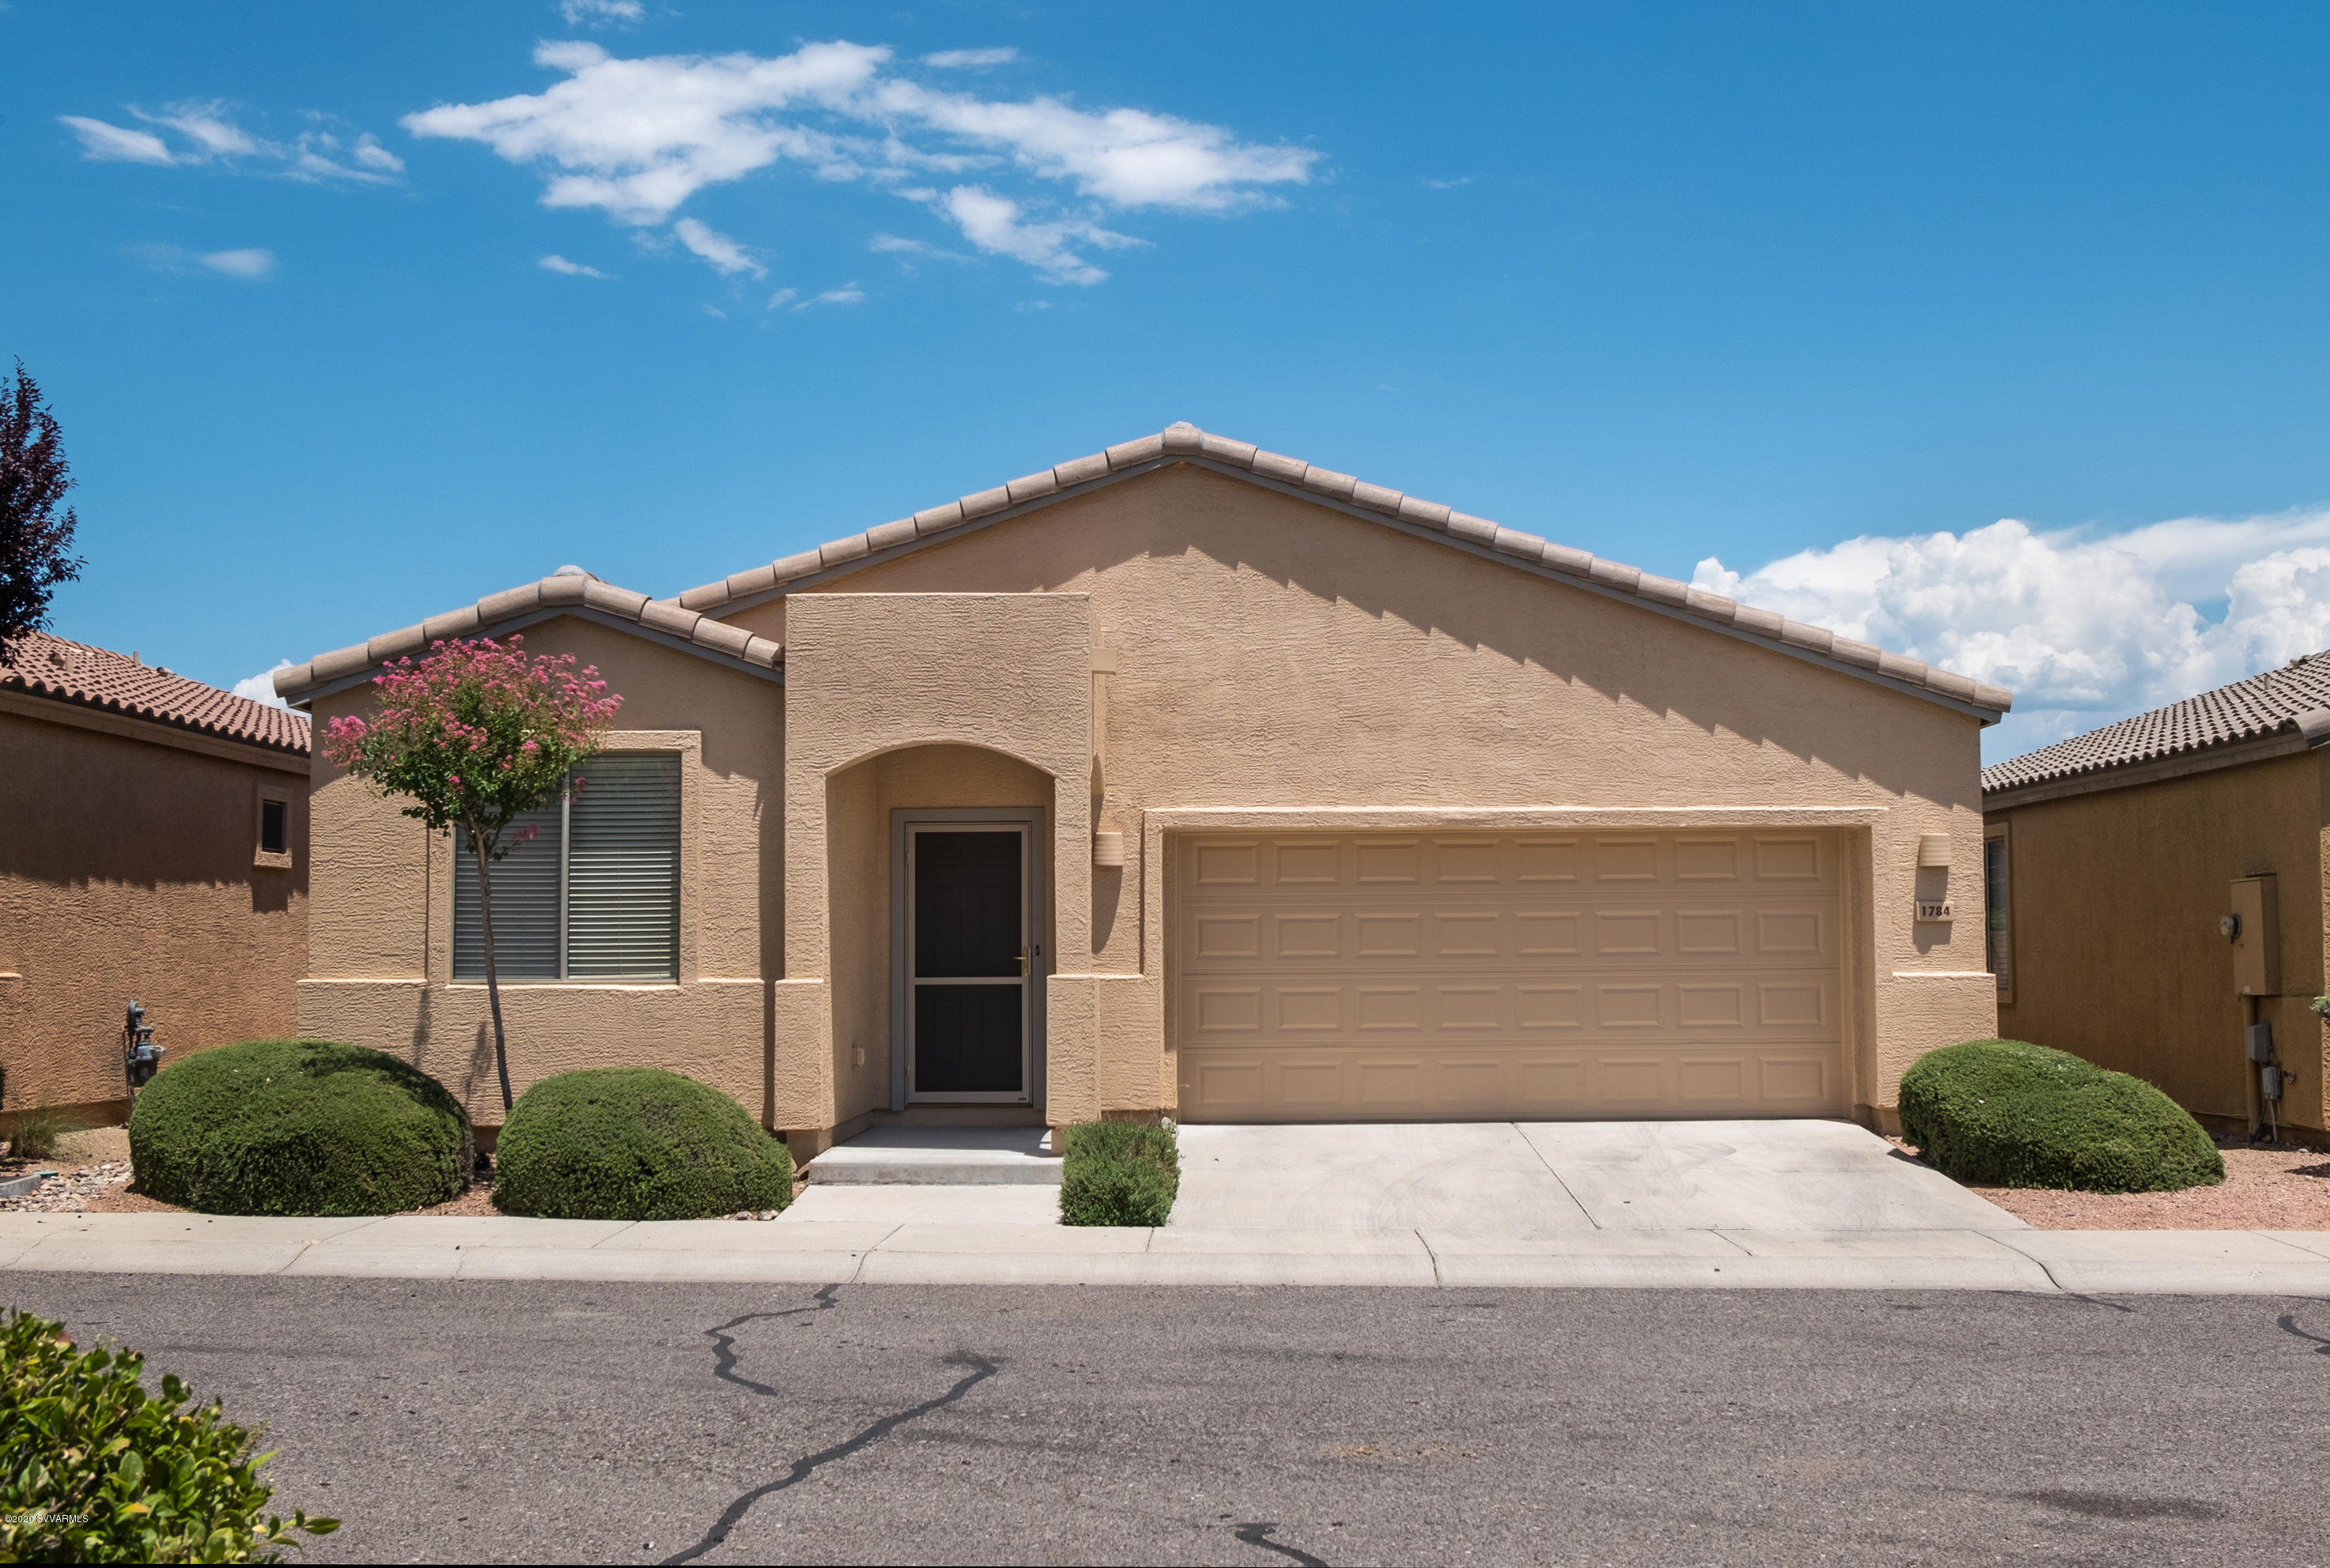 1784 E Vista de Montana Cottonwood, AZ 86326